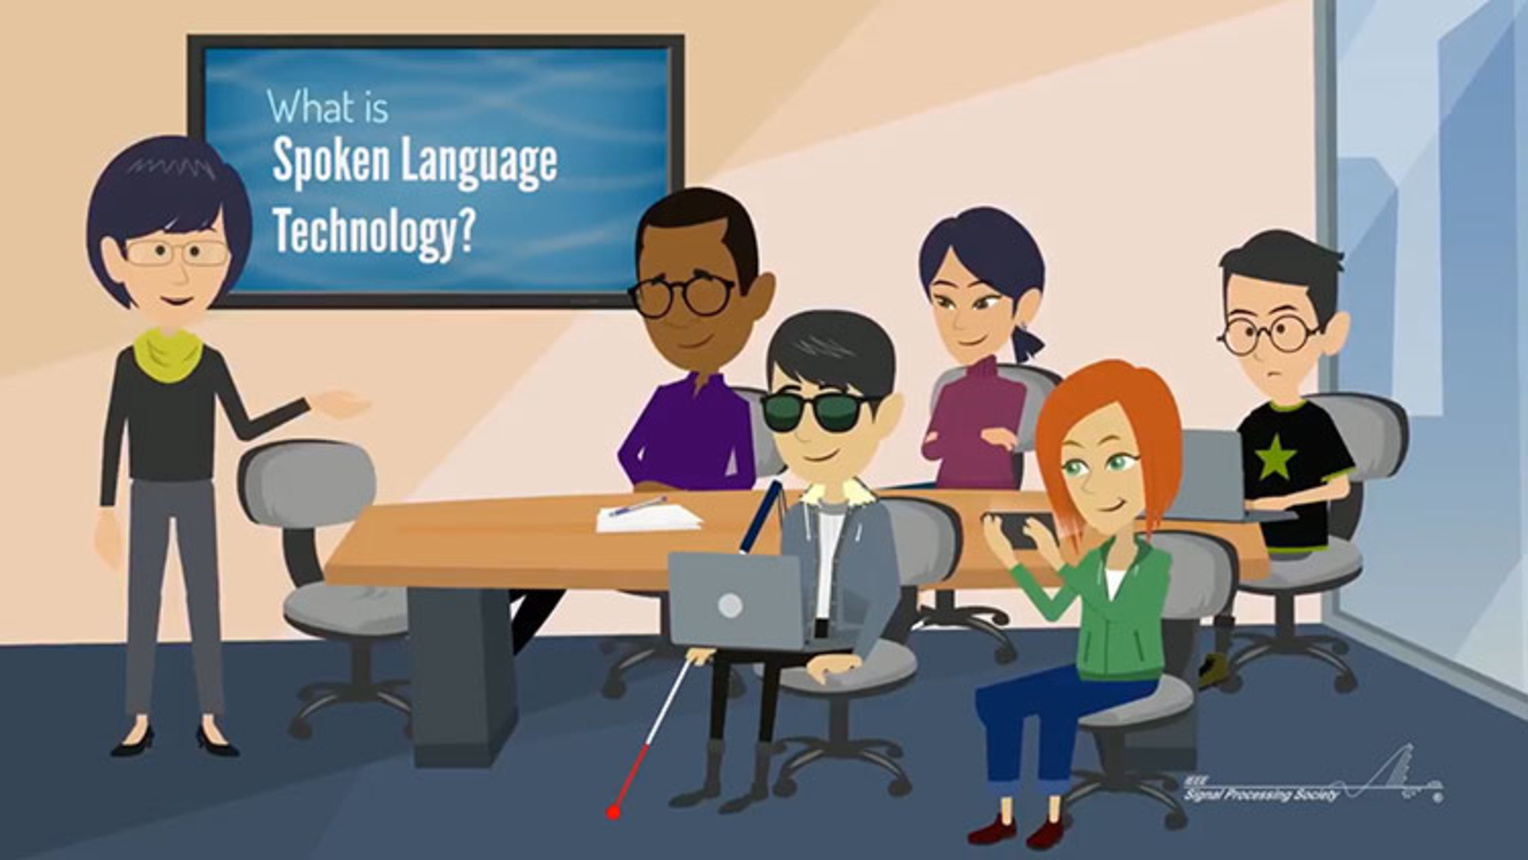 SPS Video: What is Spoken Language Technology